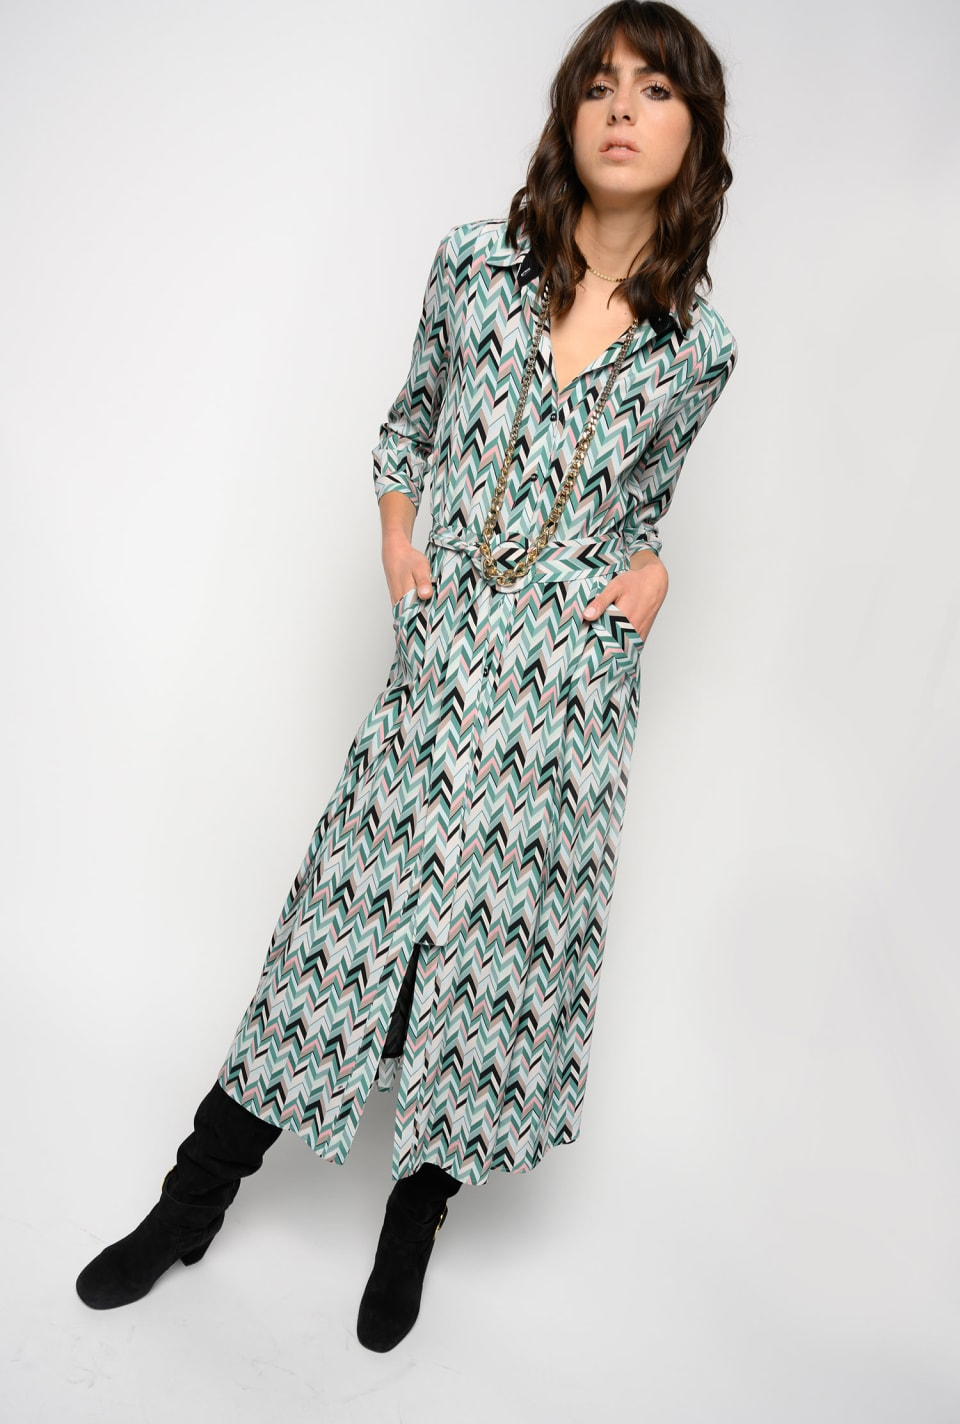 Chevron print maxi shirtwaister dress - Pinko